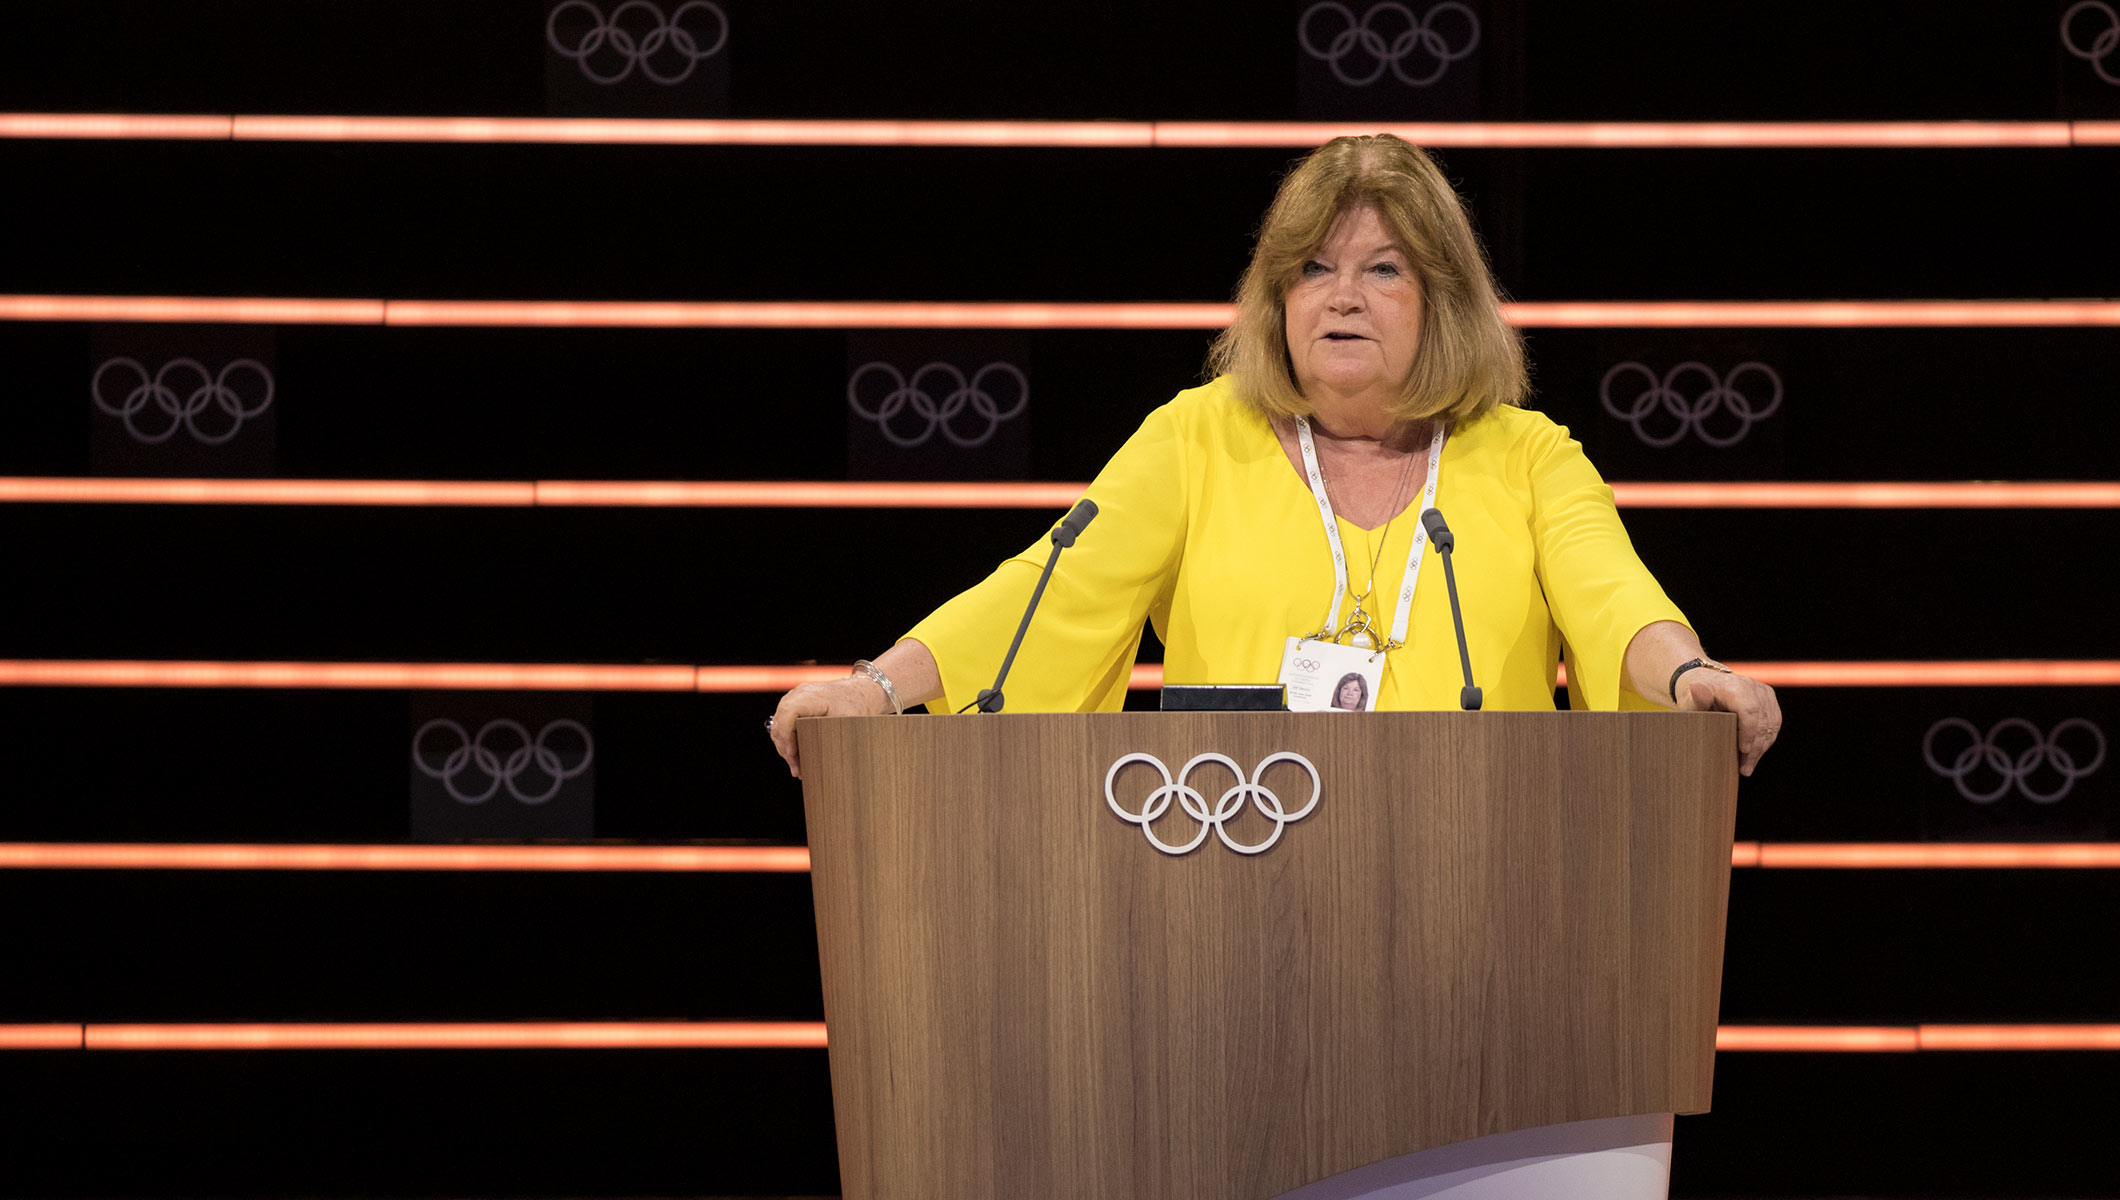 134th IOC Session - Gunilla Lindberg presenting the PyeongChang 2018 report